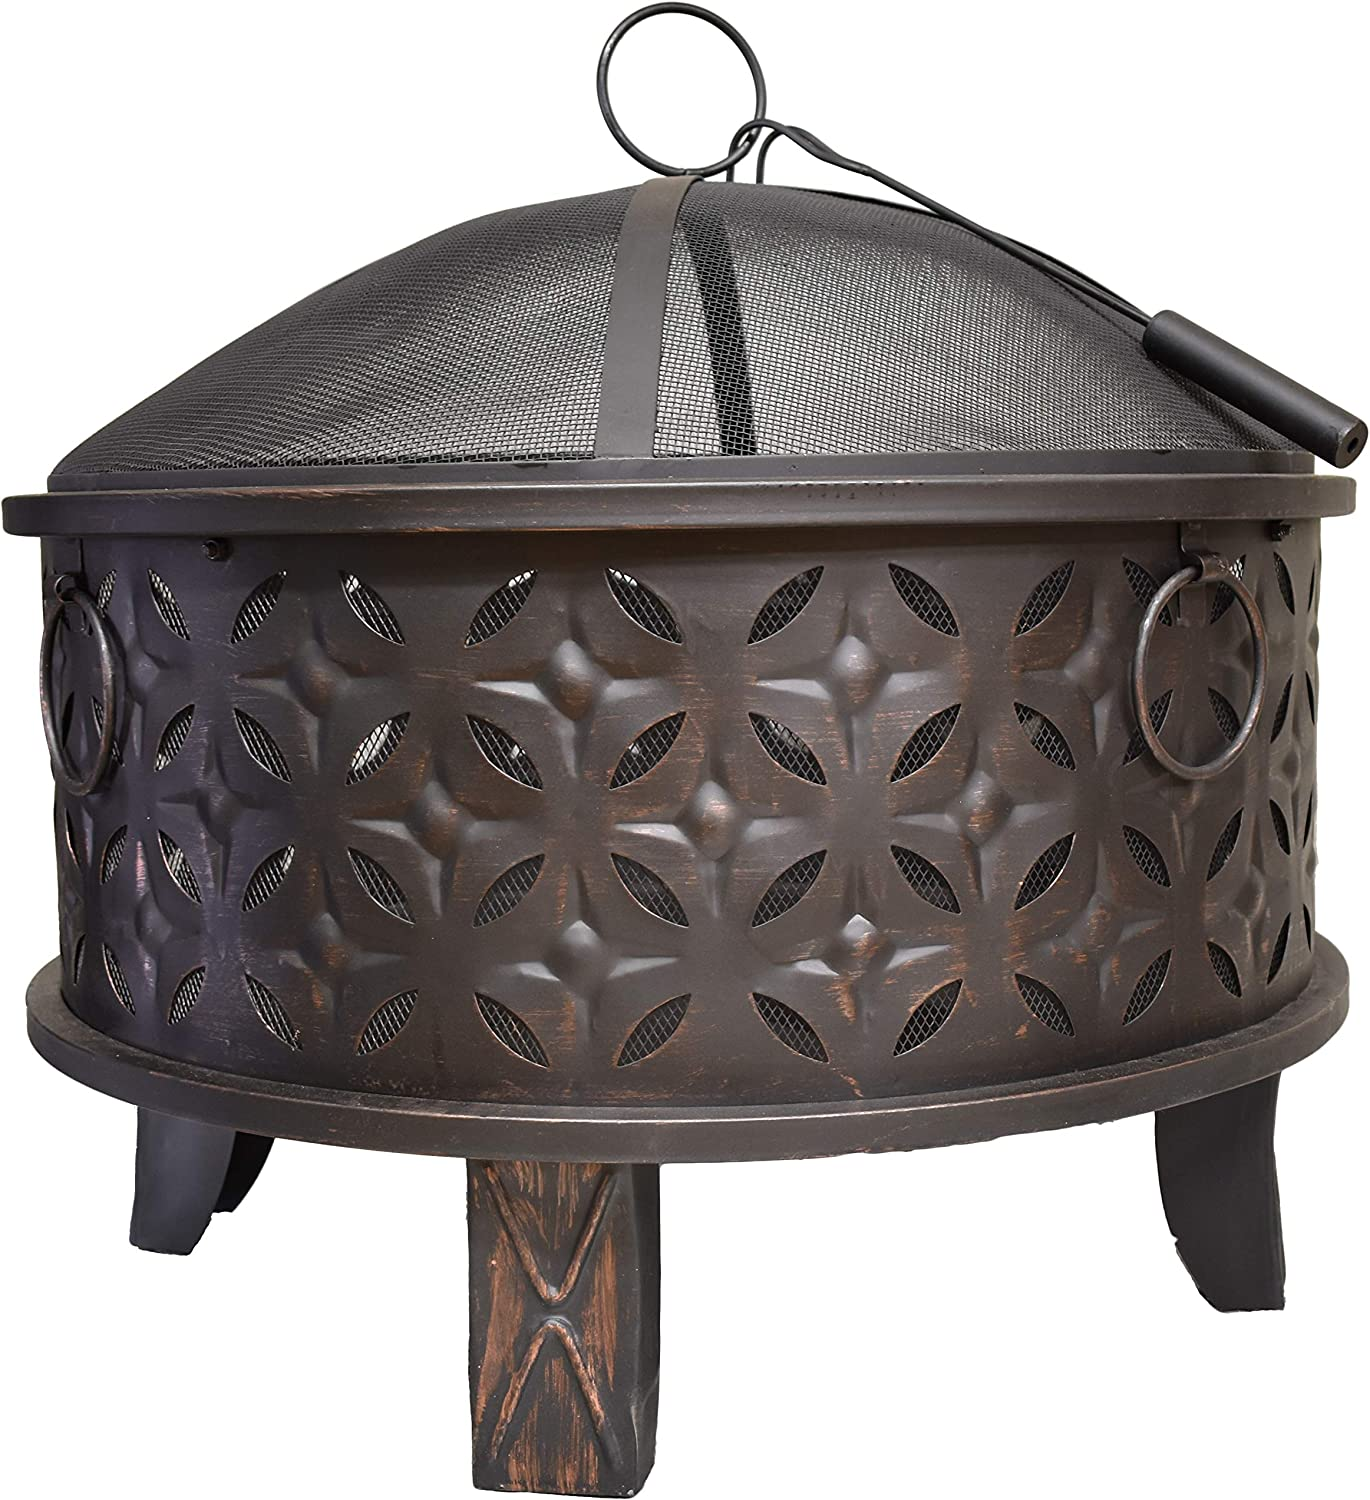 Amazon Com Global Outdoors 30 In Deep Bowl Steel Fire Pit With Spark Screen Weather Resistant Cover And Safety Poker Garden Outdoor